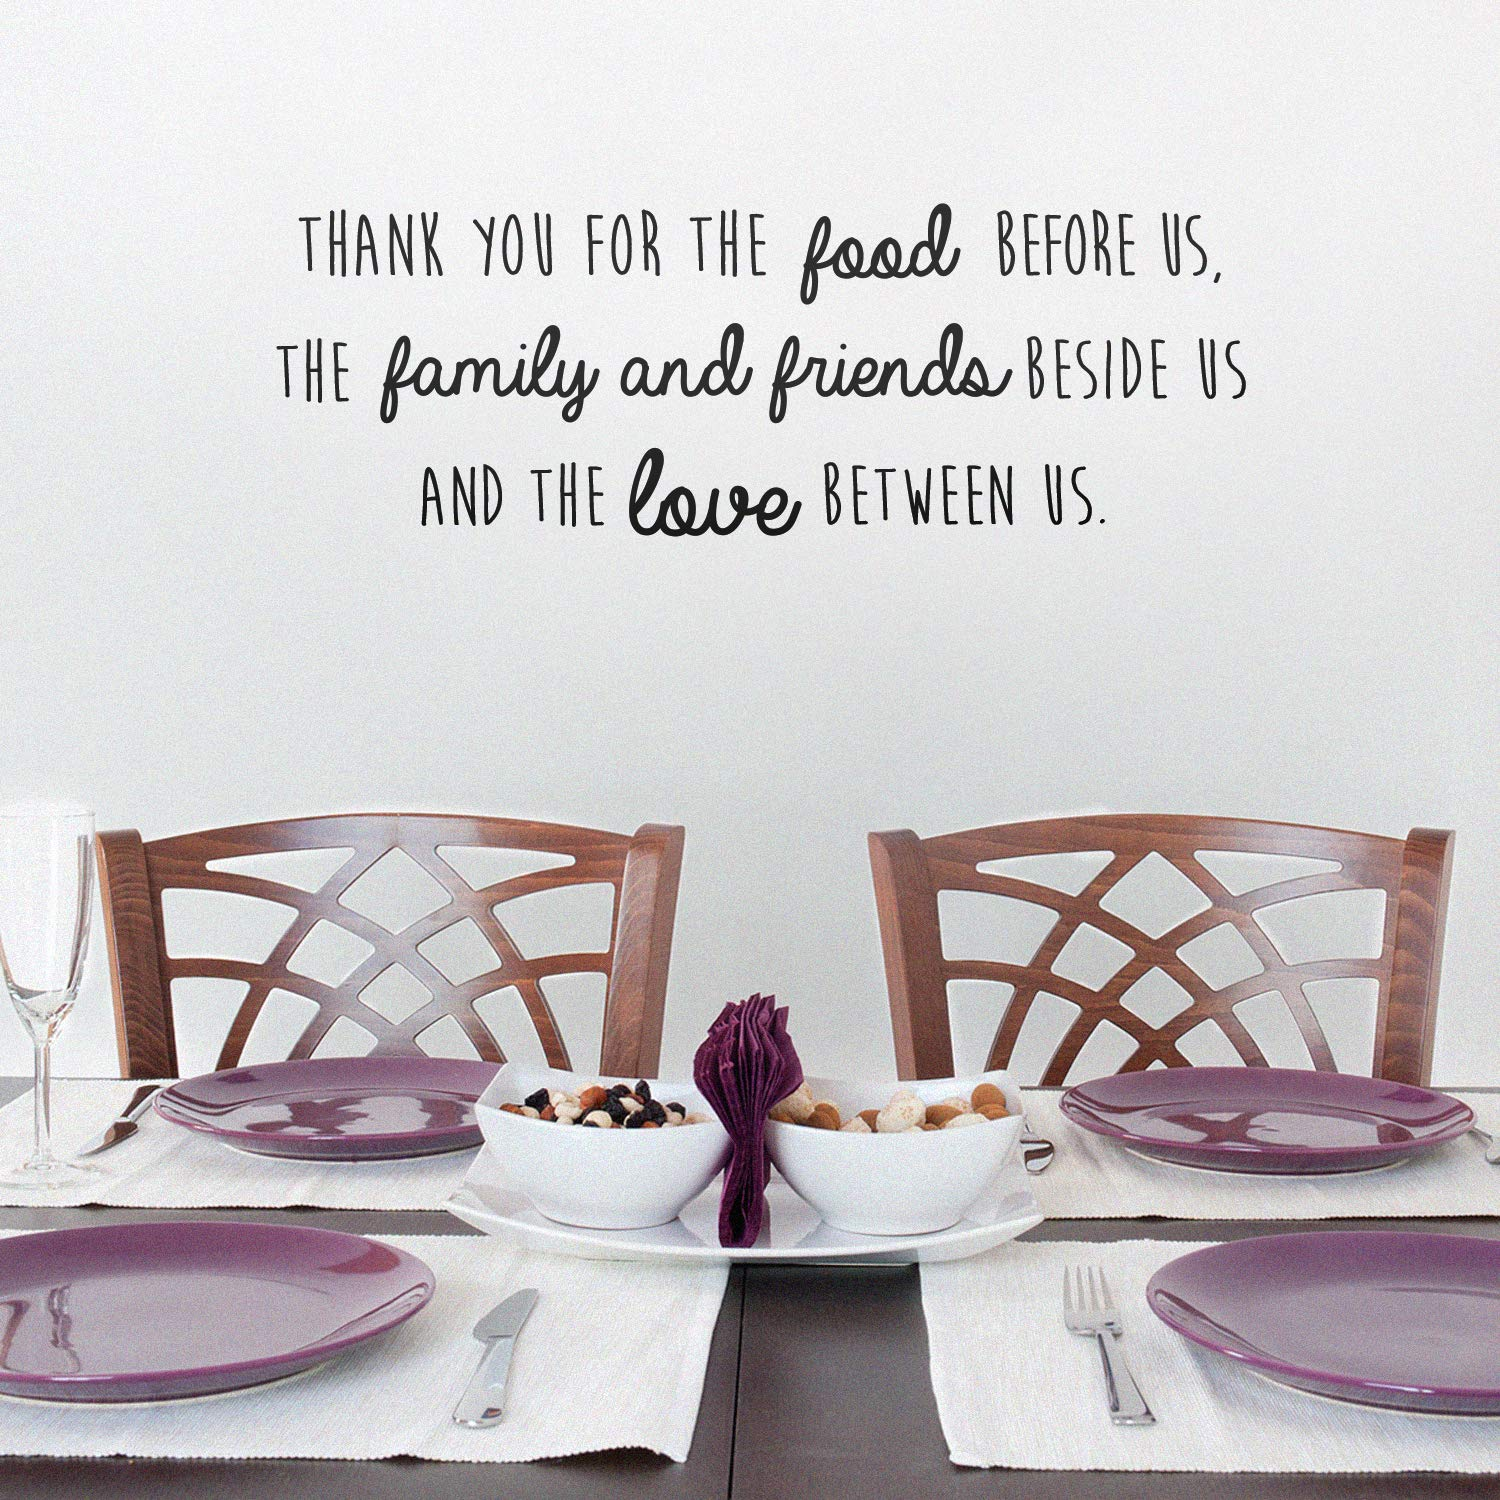 """Vinyl Wall Art Decal - Thank You for The Food Before Us The Family and Friends Beside US - 10"""" x 27"""" - Prayer Quotes Home Bedroom Apartment Living Room Kitchen Dining Room Decor (10"""" x 27"""", Black)"""